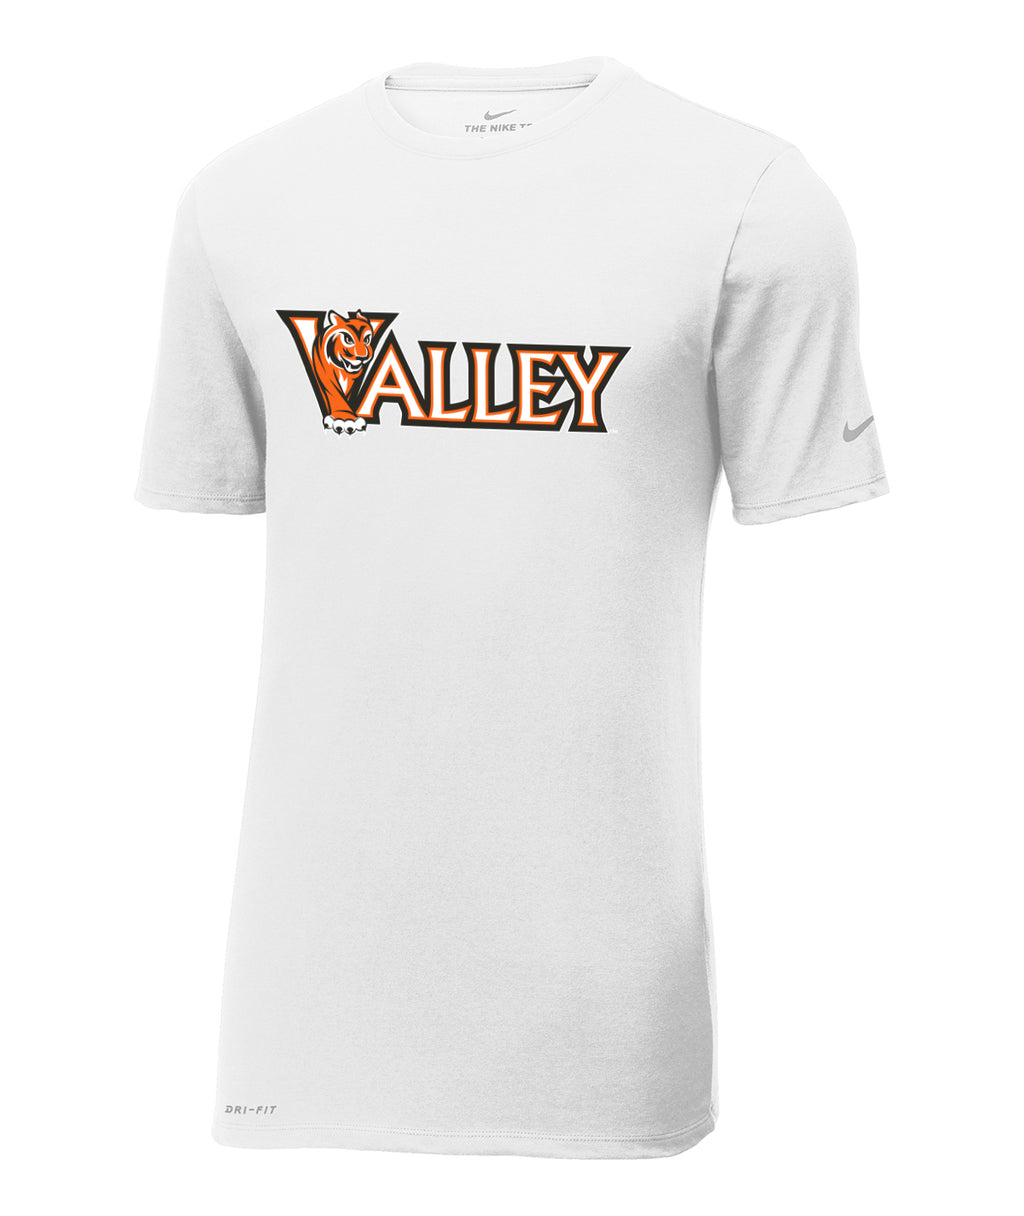 Valley Wordmark Nike Dri-Fit Performance Tee